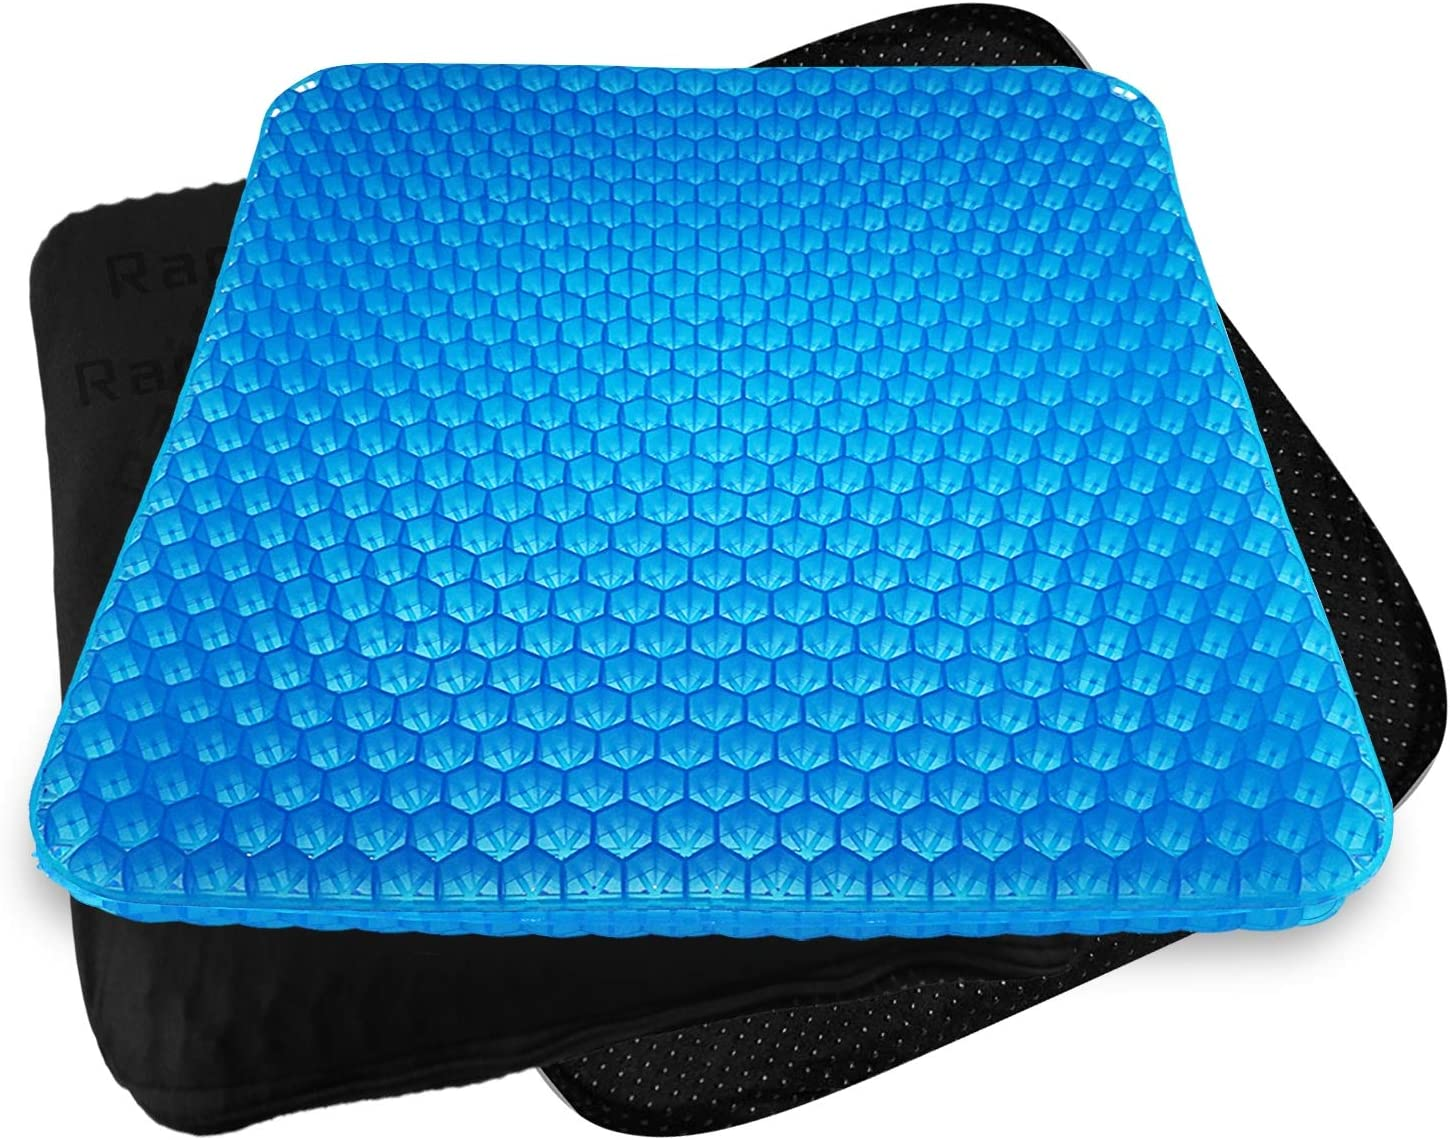 Rariro Extra-Large Gel Seat Cushion, Breathable Honeycomb Design Pain Relief Egg Seat Cushion, for Pressure Relief Back Tailbone Pain - Home Office Chair Cars Wheelchair (2 Non-Slip Cover)